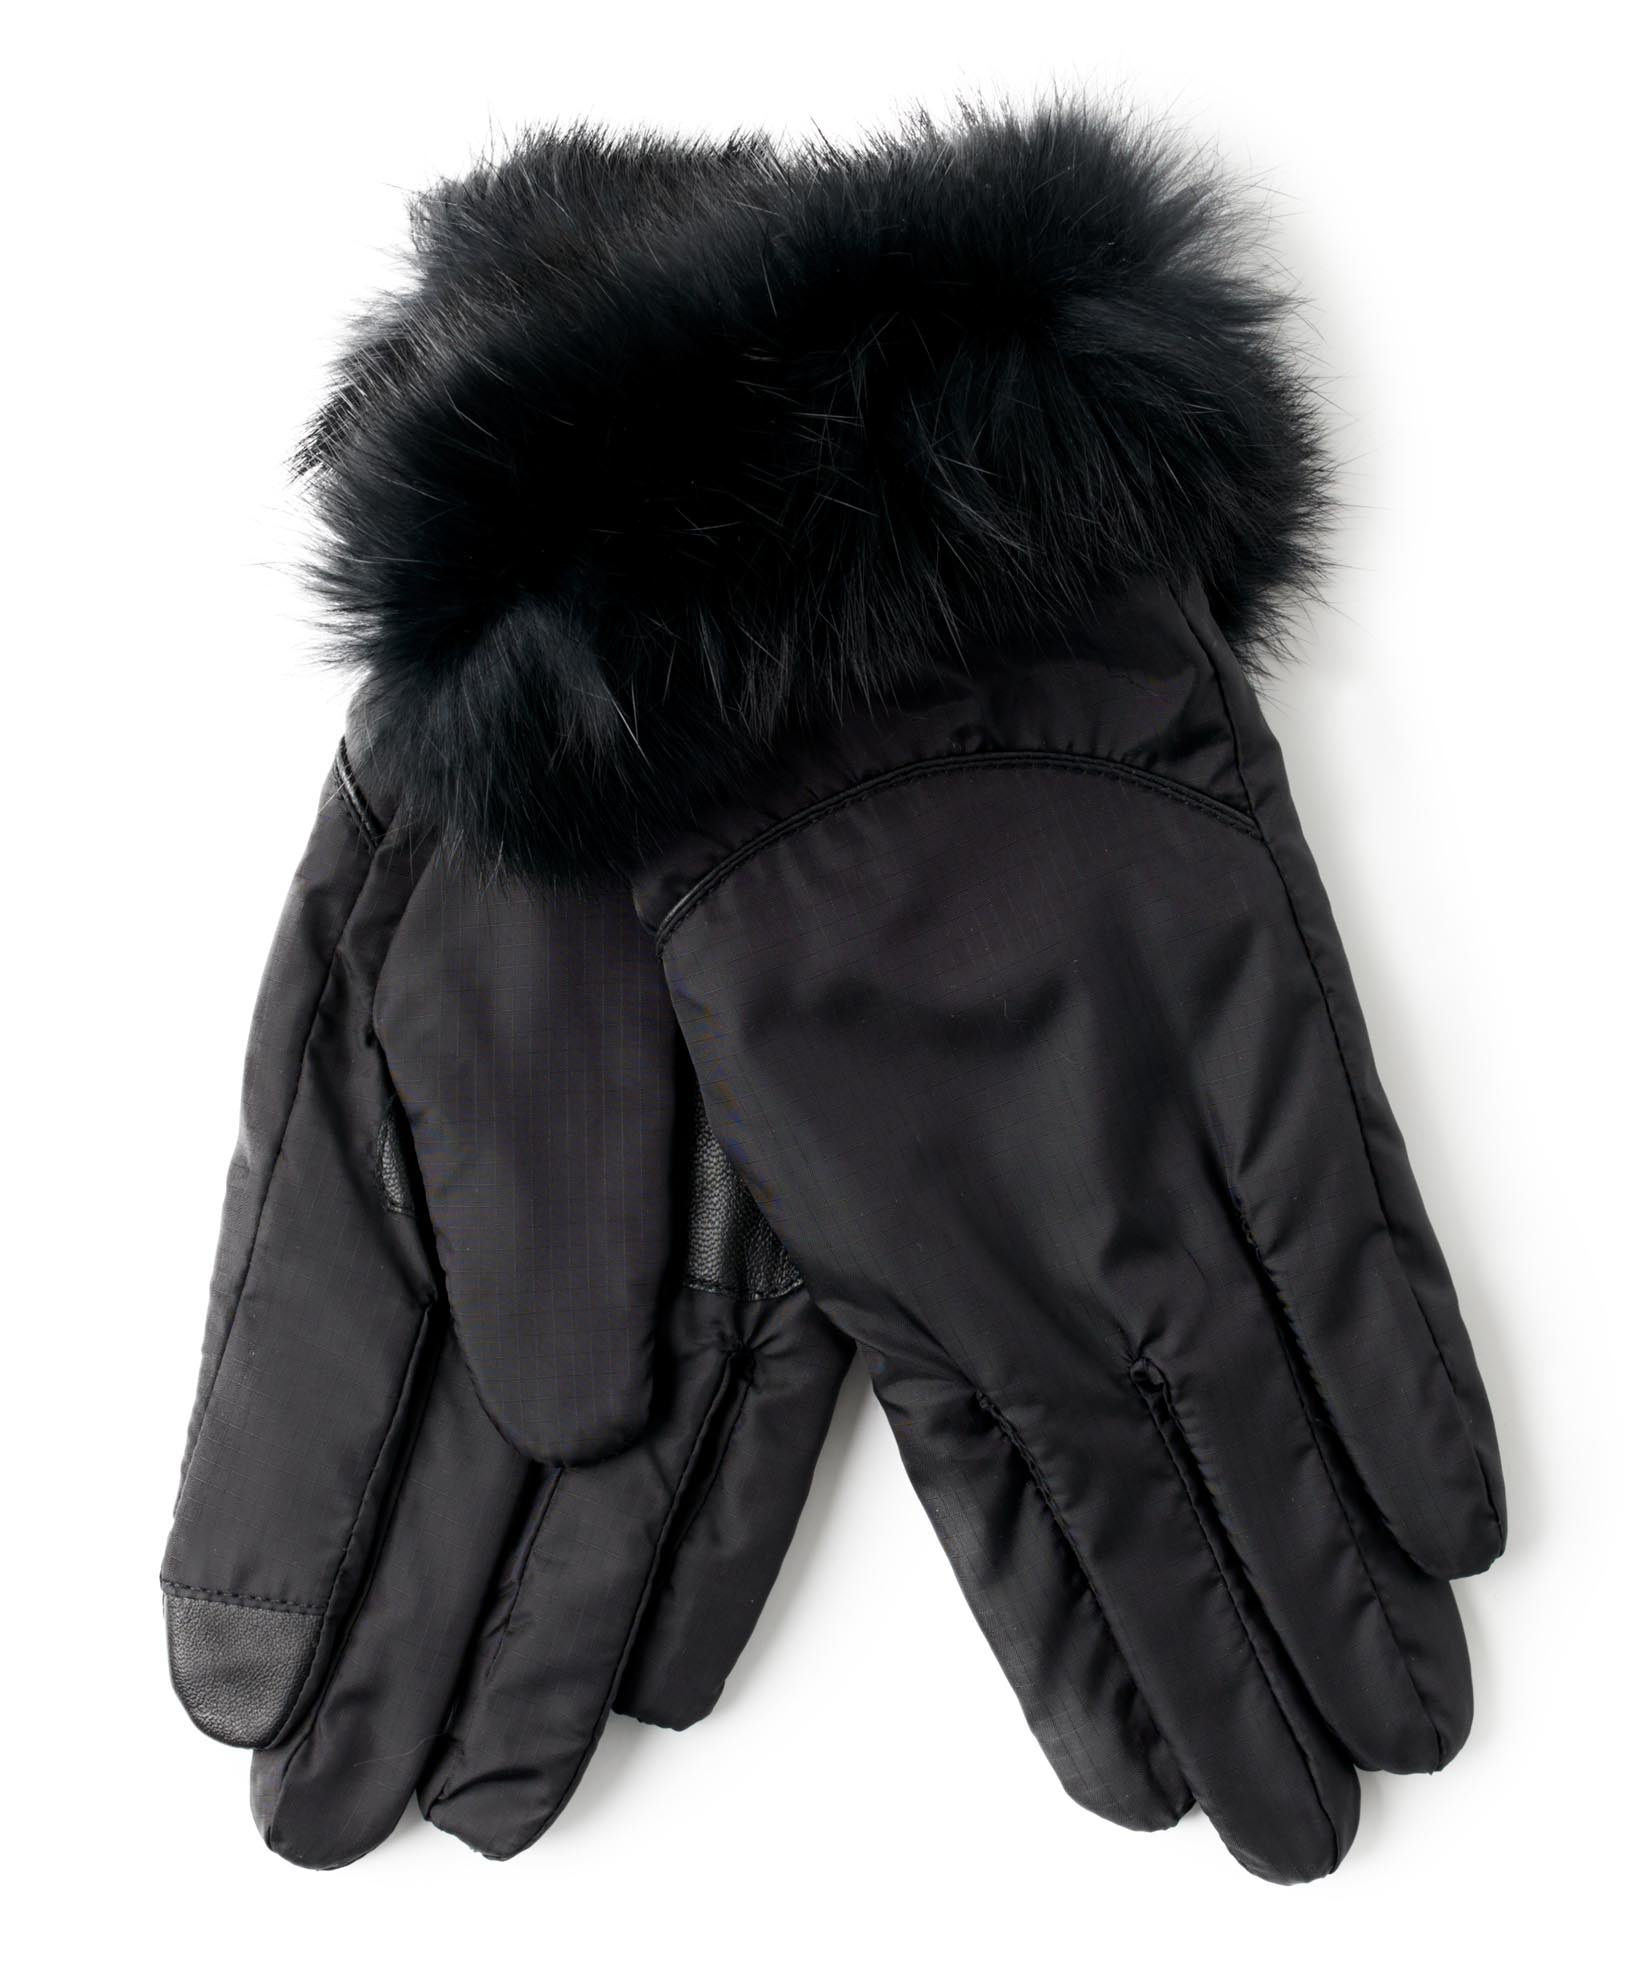 Black - Mountain Glove Rabbit Fur Cuff